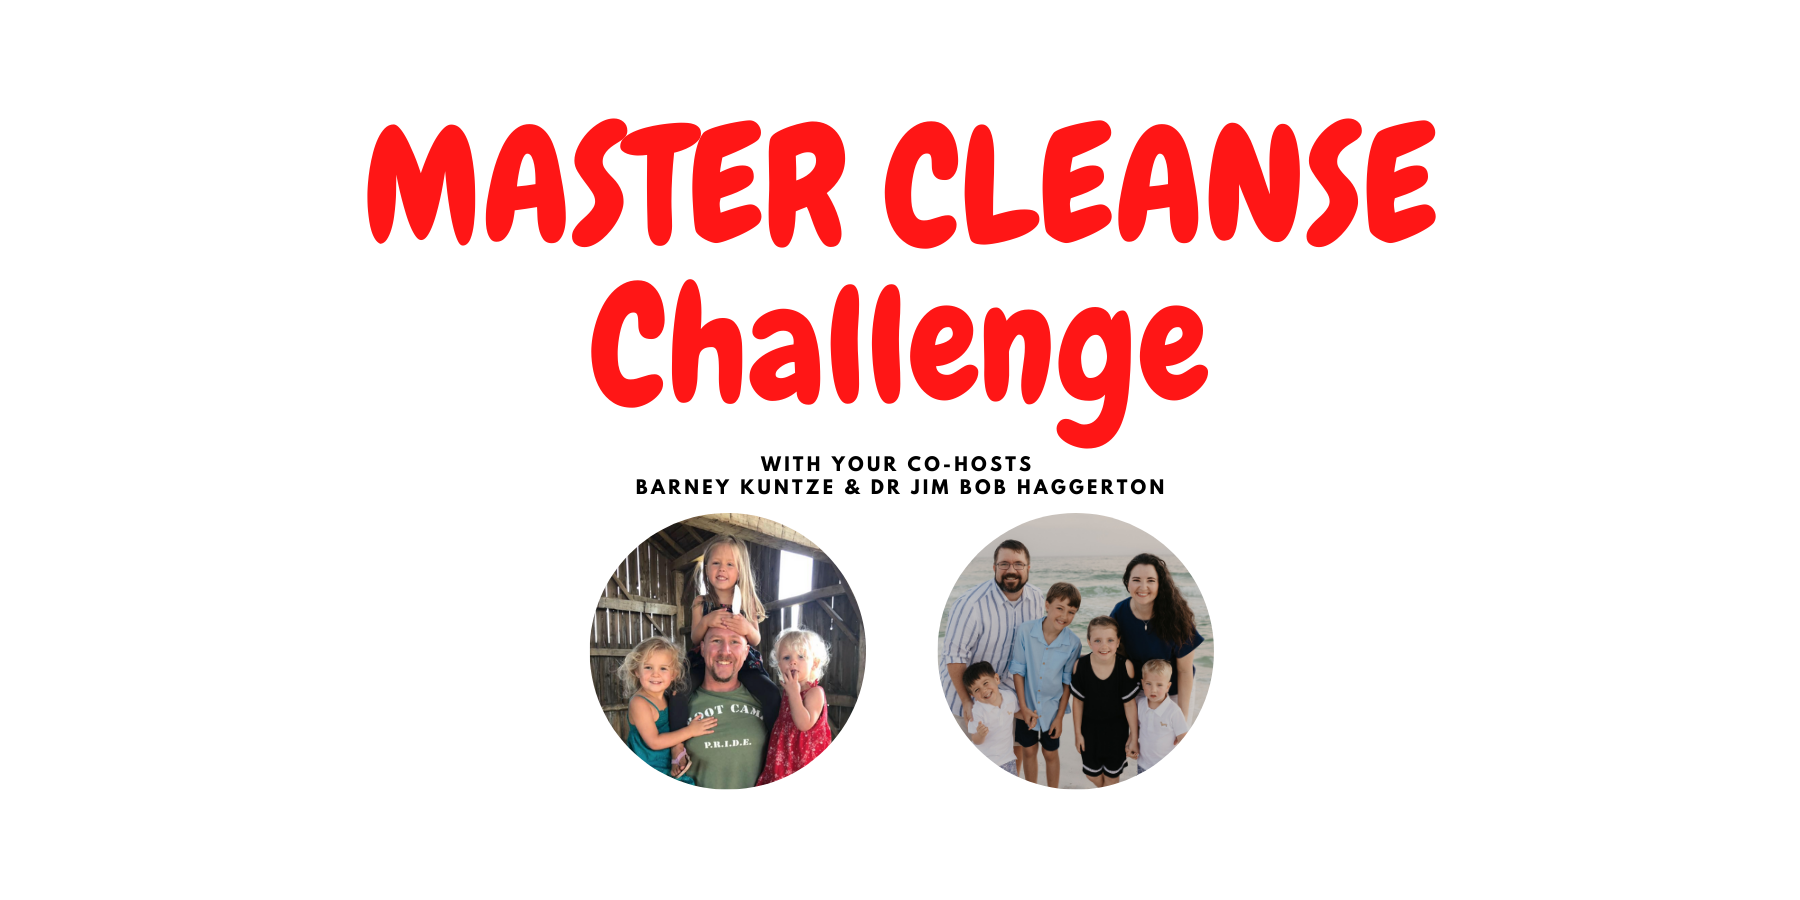 The Master Cleanse Challenge